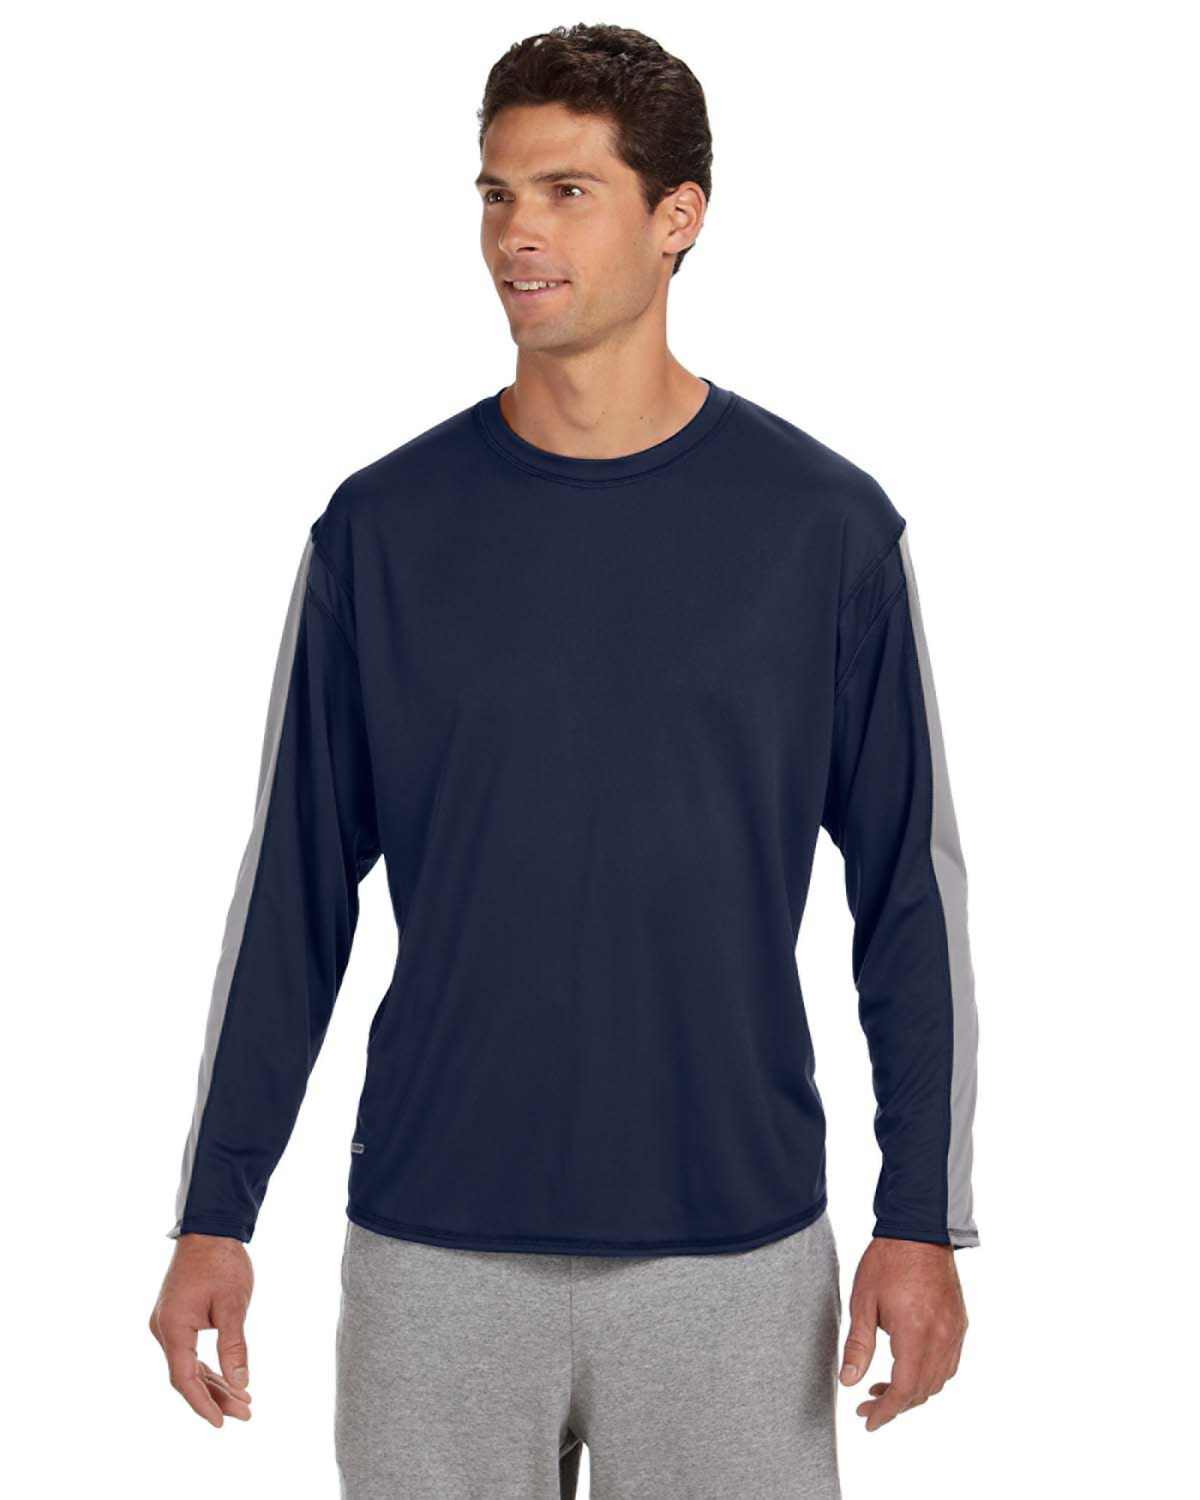 Russell Athletic 6B5DPM - Long-Sleeve Performance T-Shirt